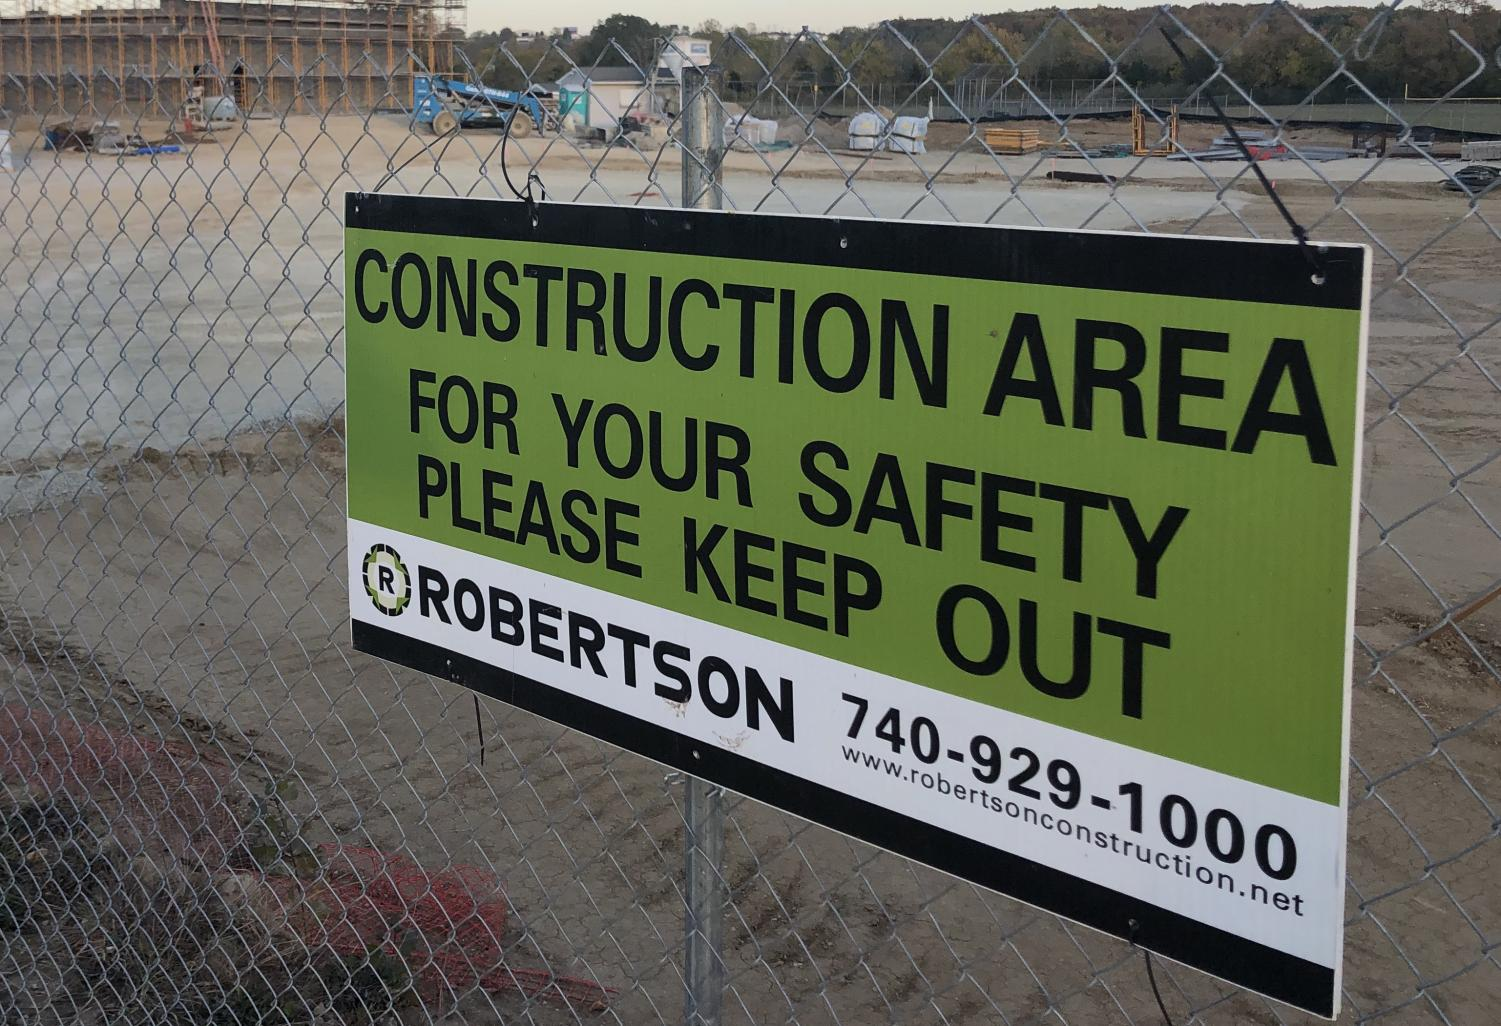 School officials take precautions to protect students and community members safe around the construction project